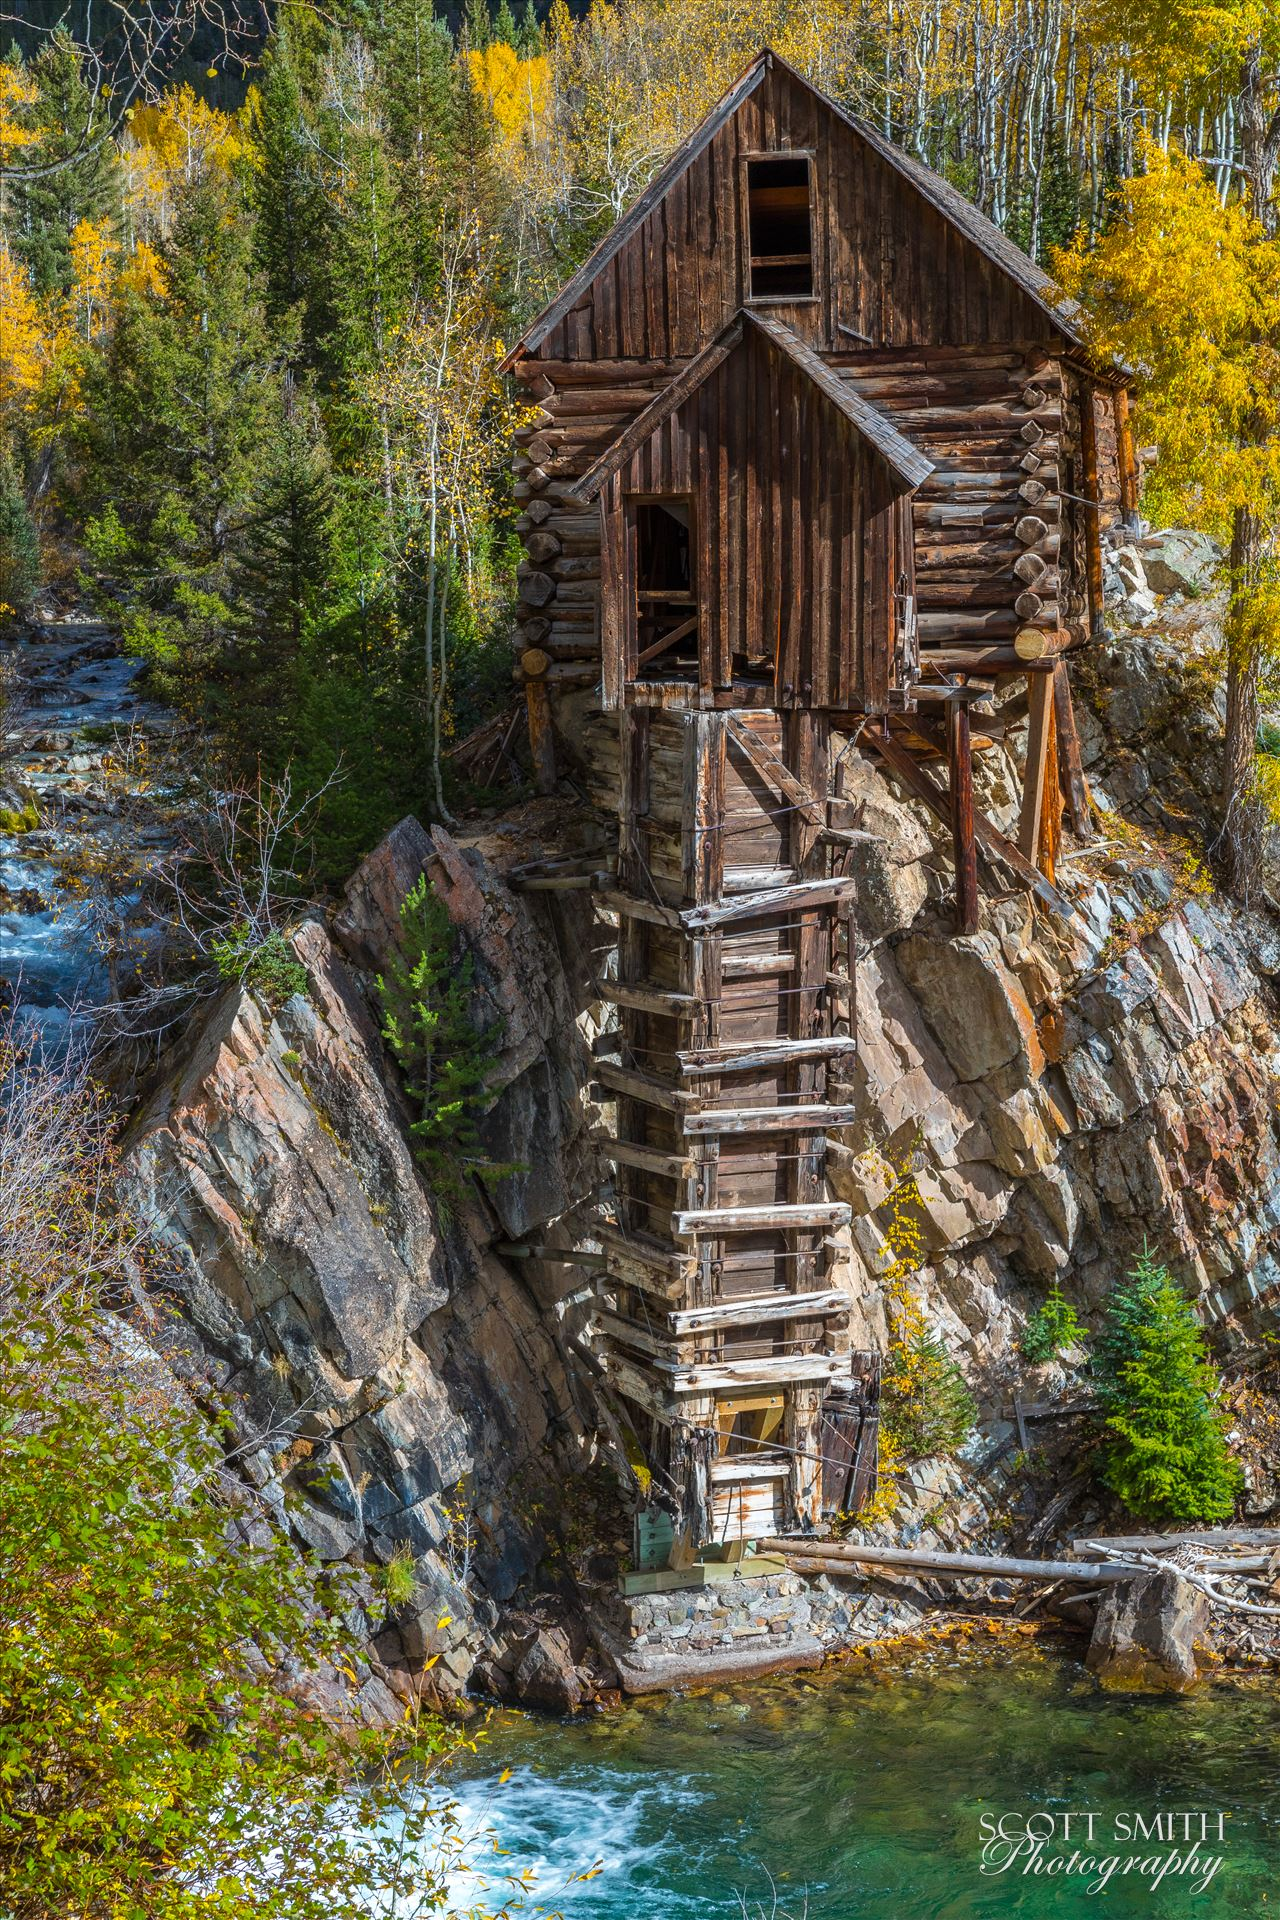 Crystal Mill, Colorado 10 - The Crystal Mill, or the Old Mill is an 1892 wooden powerhouse located on an outcrop above the Crystal River in Crystal, Colorado by Scott Smith Photos